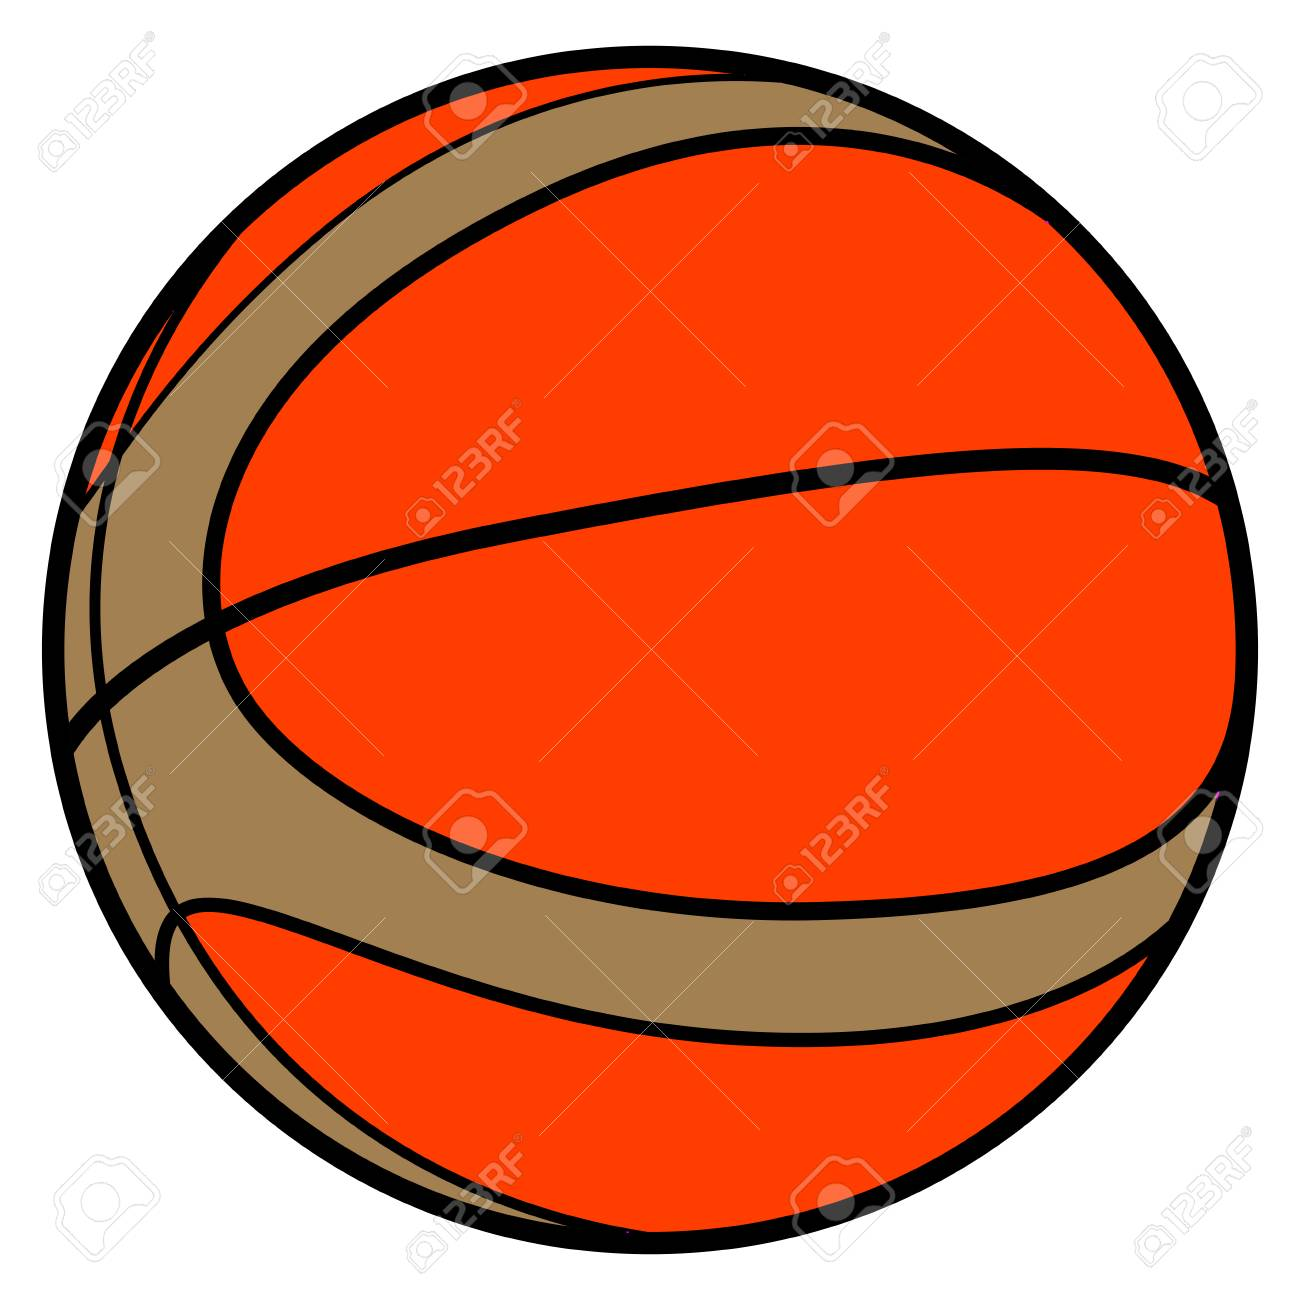 Basketball Ball Isolated Comic Basketball Ball On A White Background Illustration